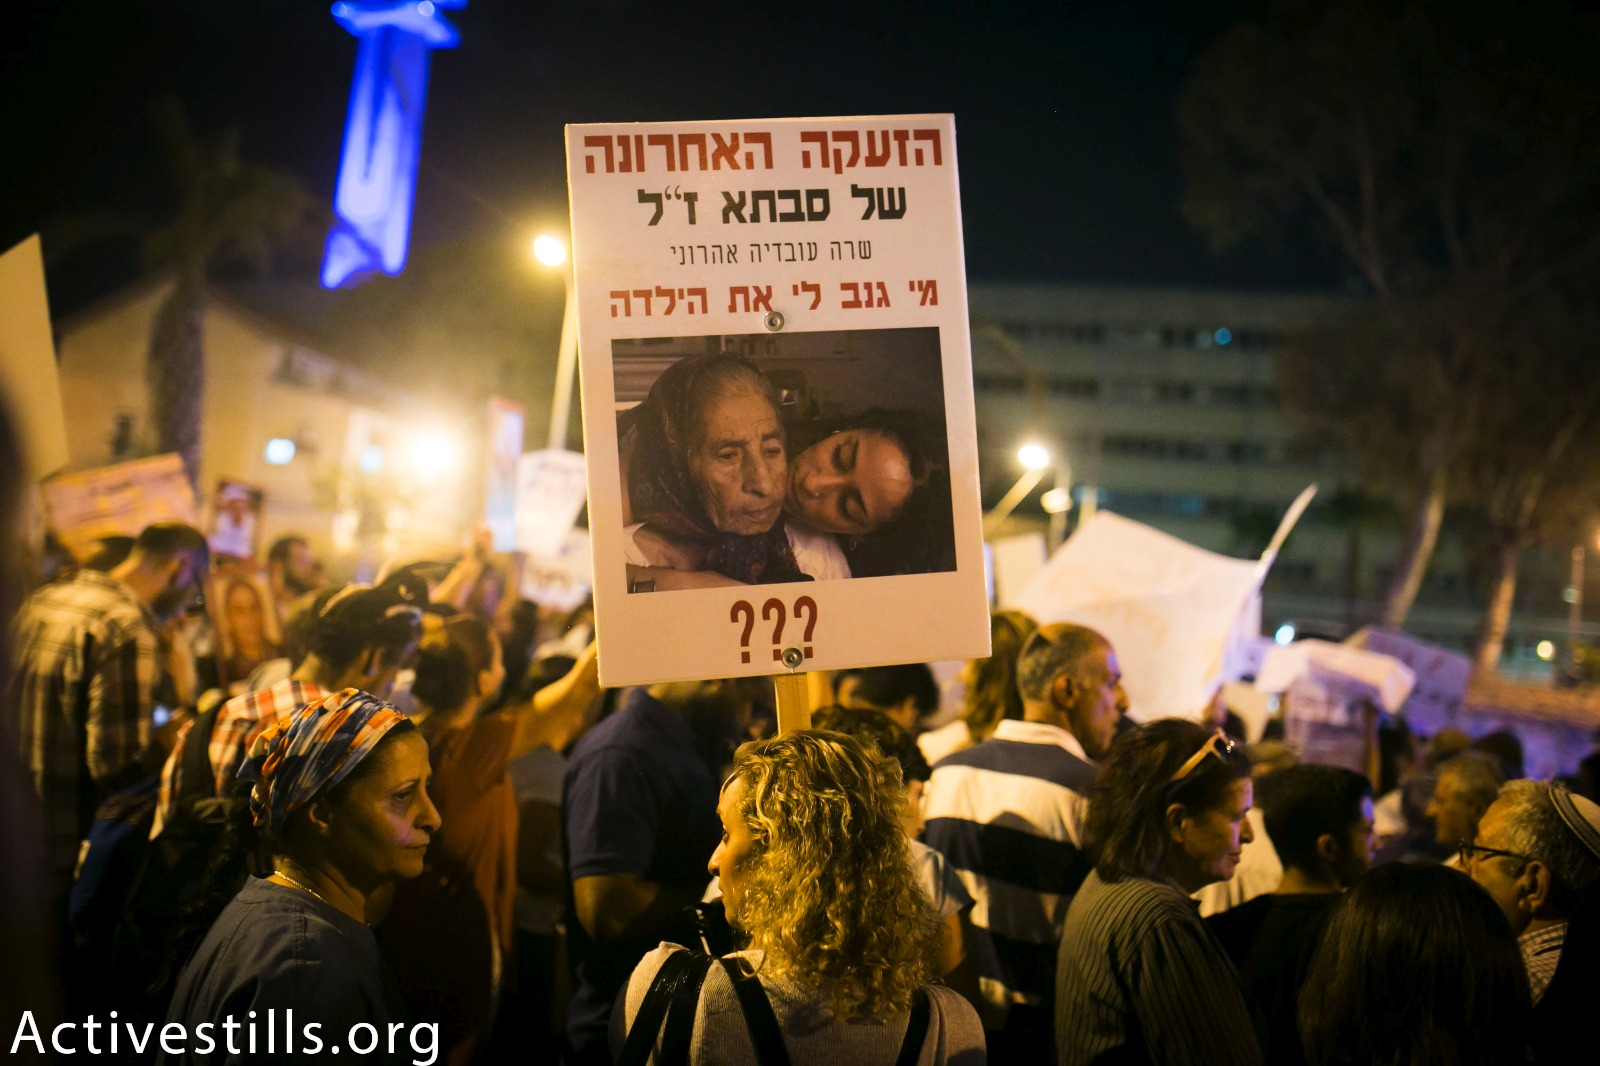 Demonstrators block a central Tel Aviv street during a protest to recognize the Yemenite Children's Affair, Tel Aviv, September 25, 2017. (Shiraz Grinbaum/Activestills.org)